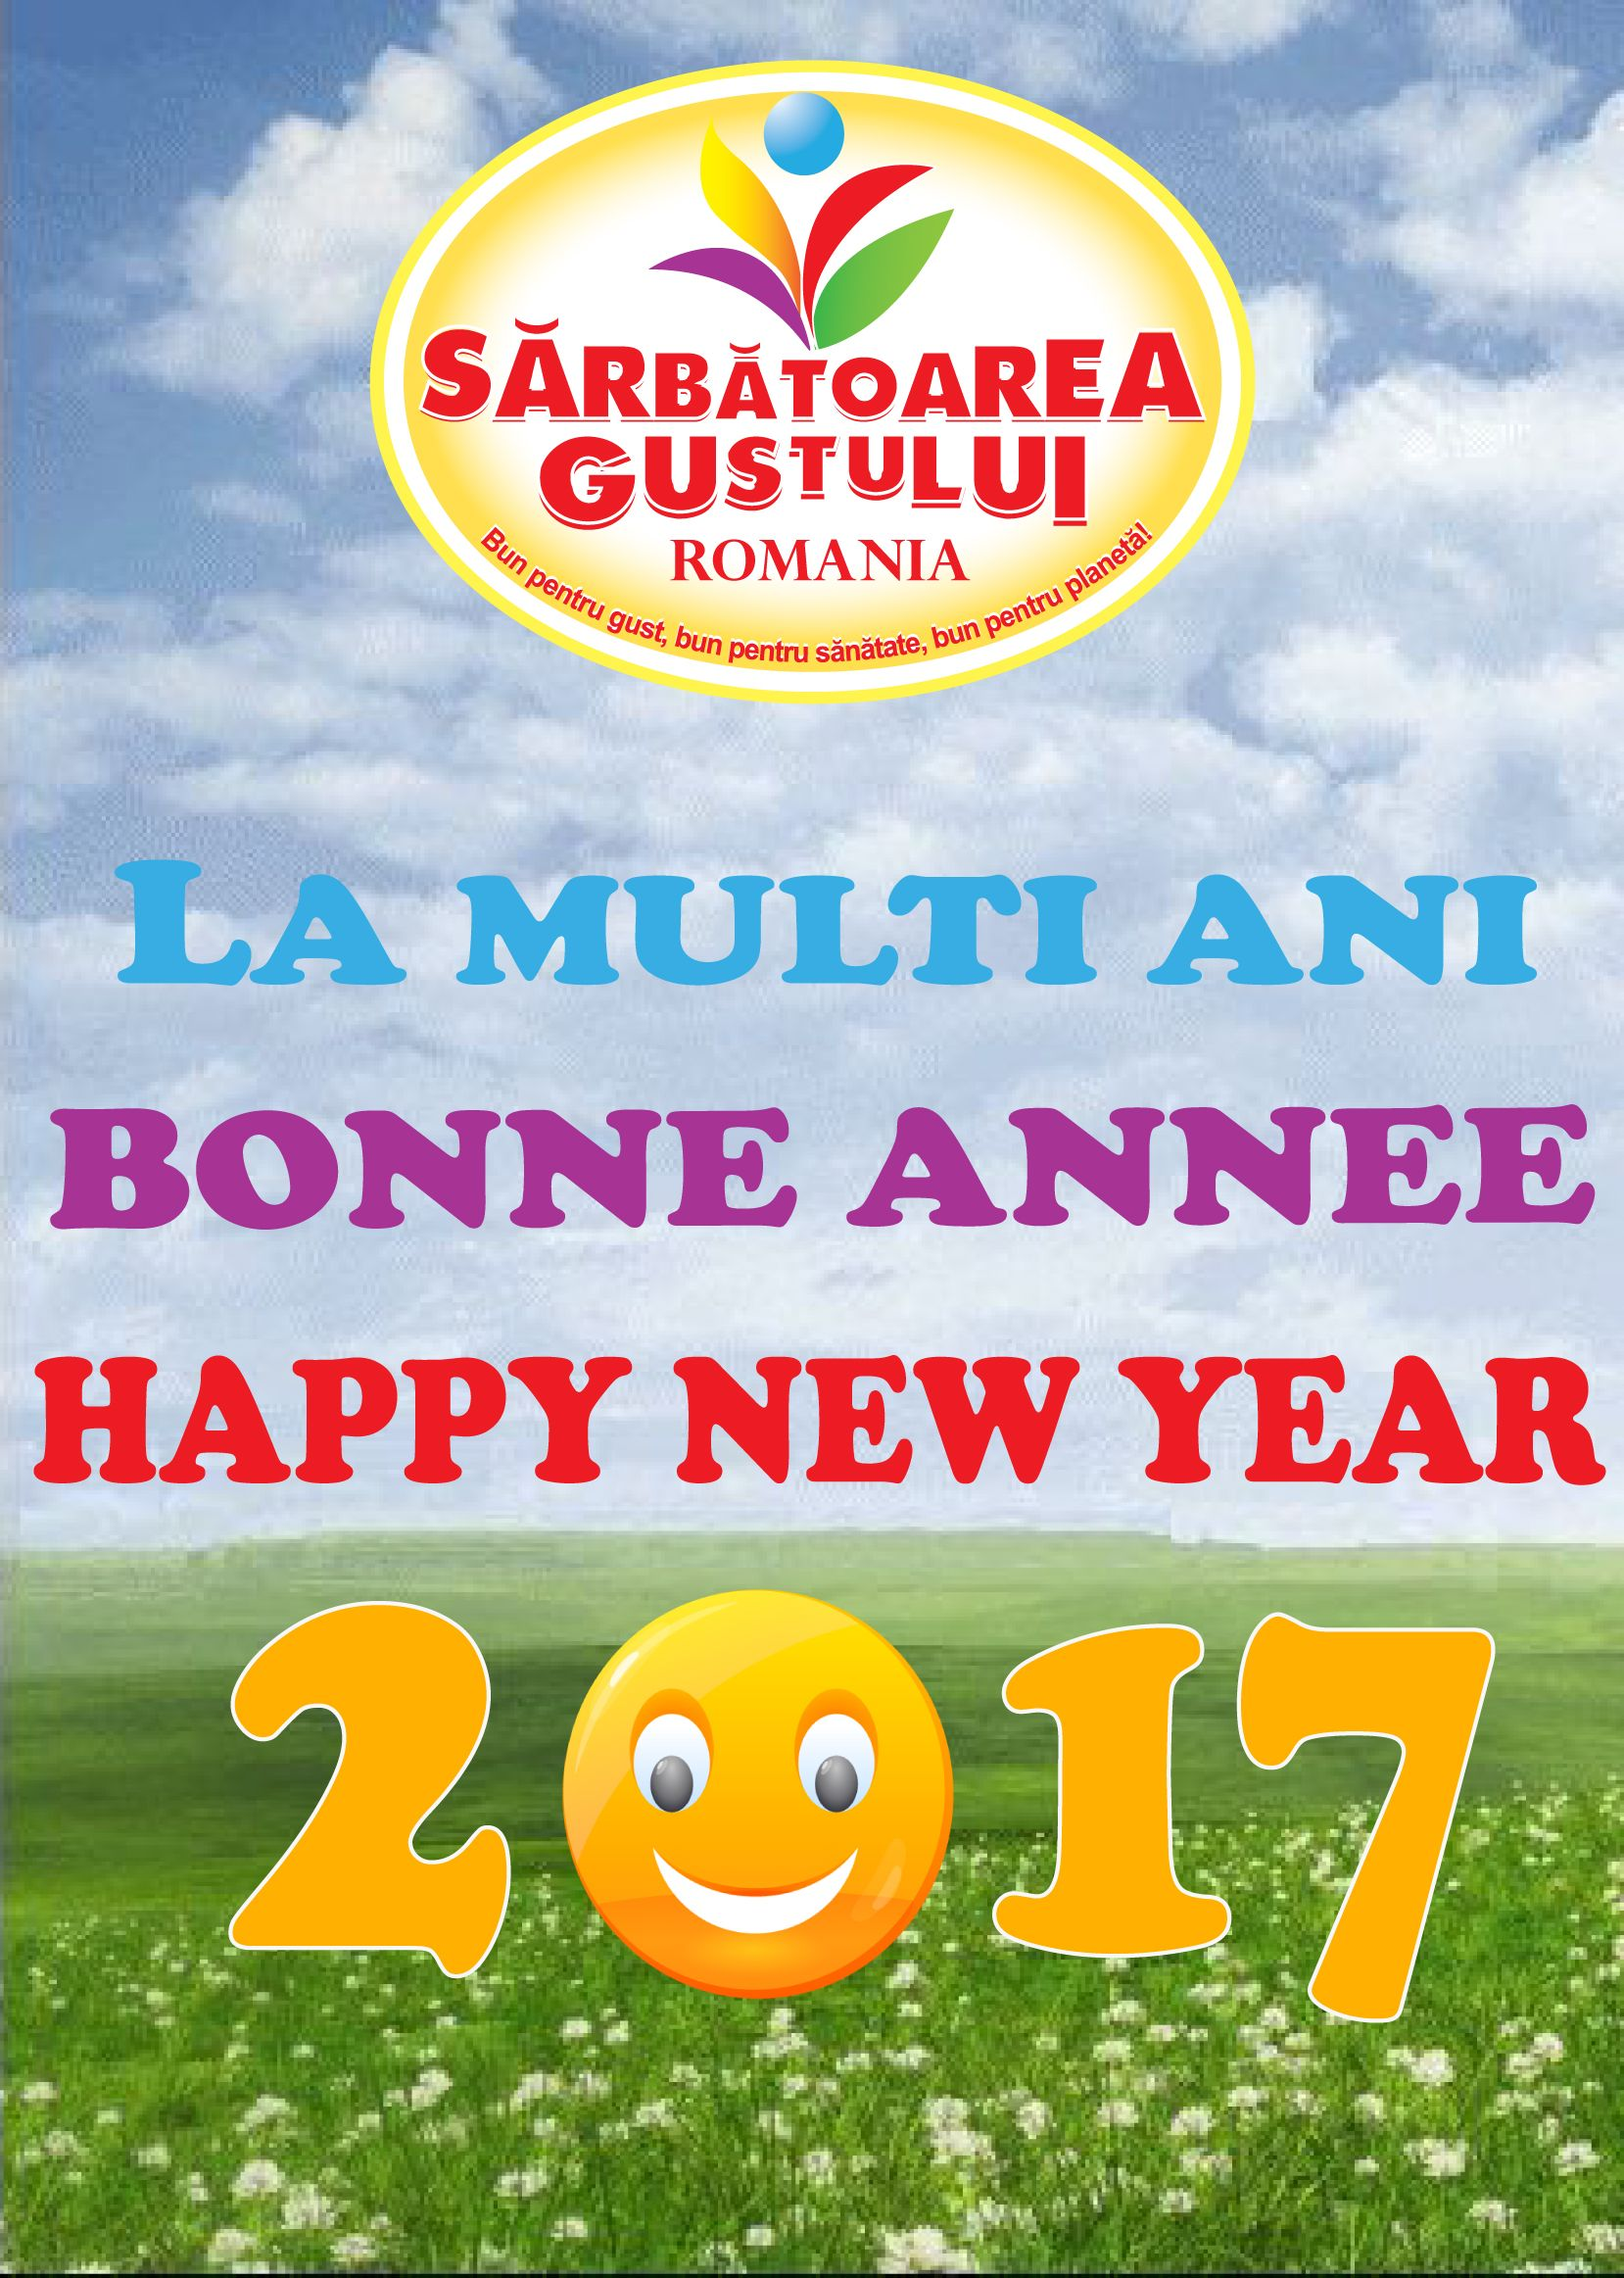 bonne-annee-la-multi-ani-happy-new-year-2017